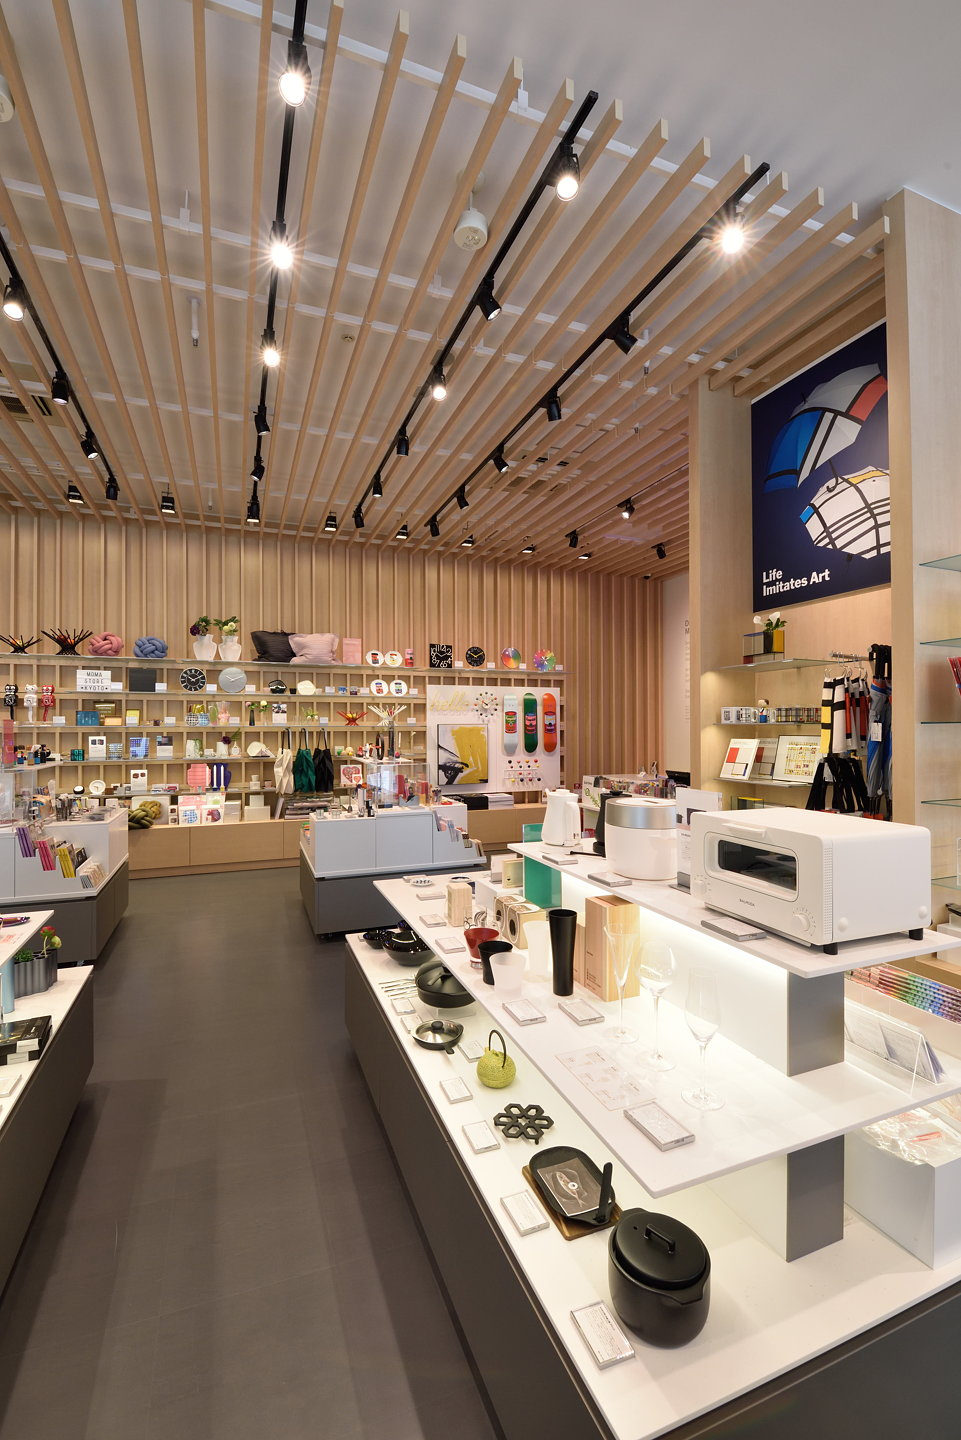 ... MoMA Design Store Kyoto 09 ... & MoMA Design Store Opens Its Second Standalone Japanese Outpost in Kyoto